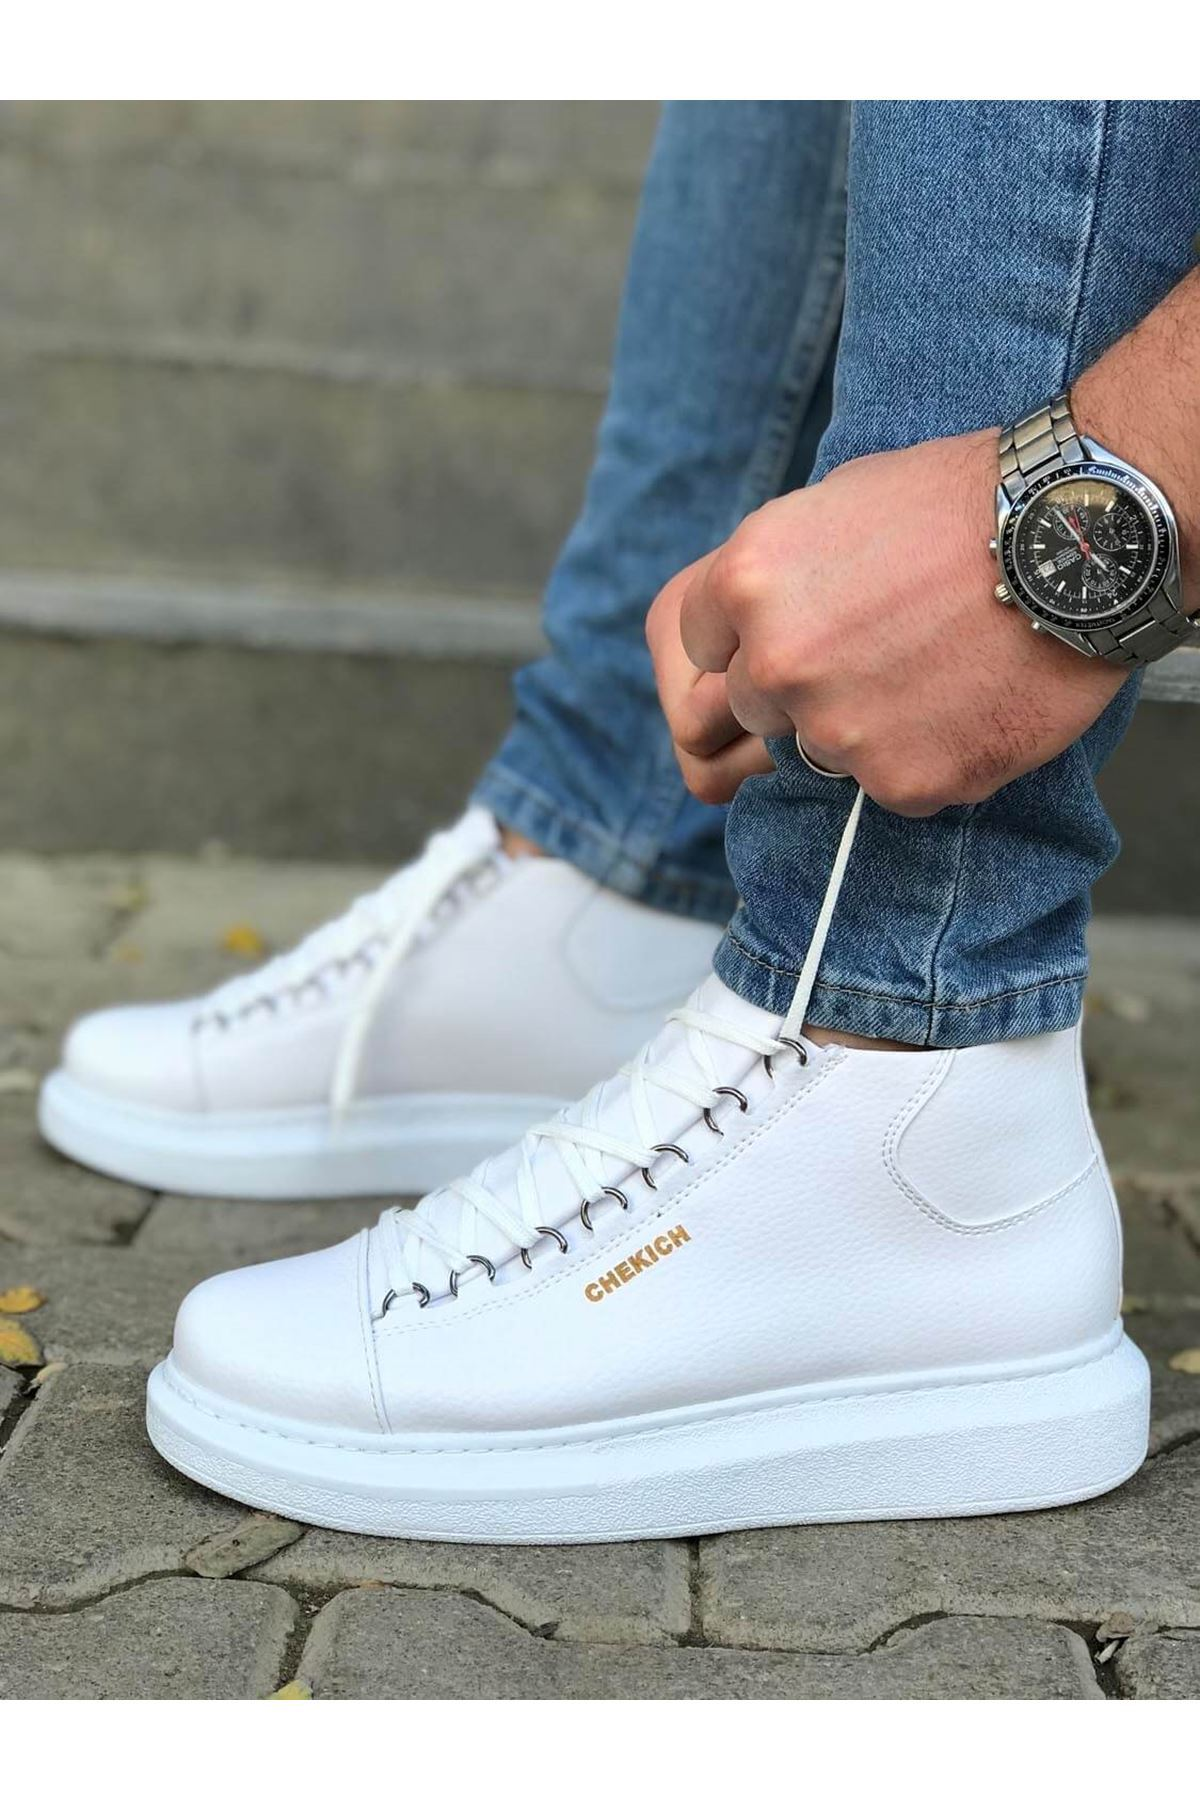 Chekich Lace-up All White Shoes for Men ch258